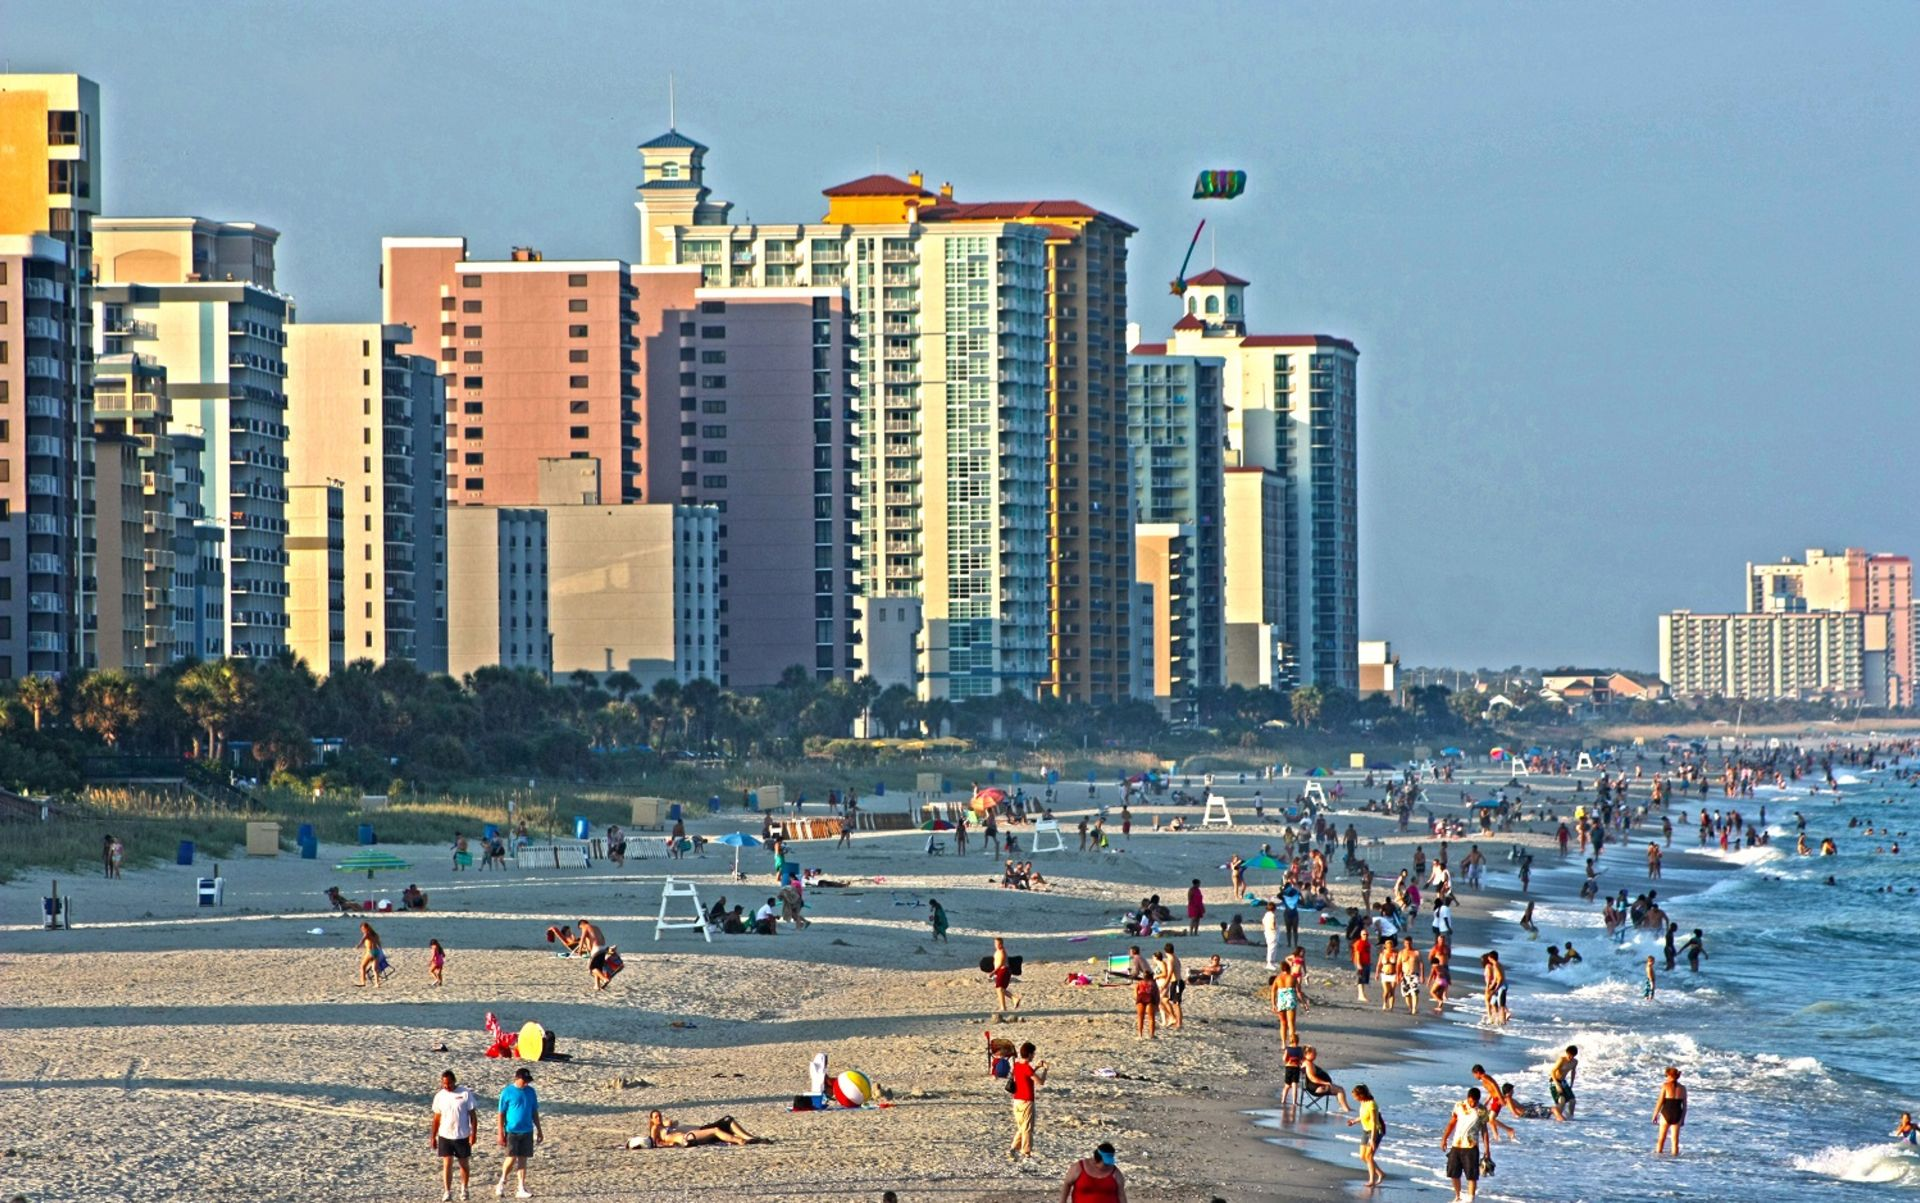 Myrtle Beach Ranks Among Fastest Growing Metropolitan Areas in the Nation, Again